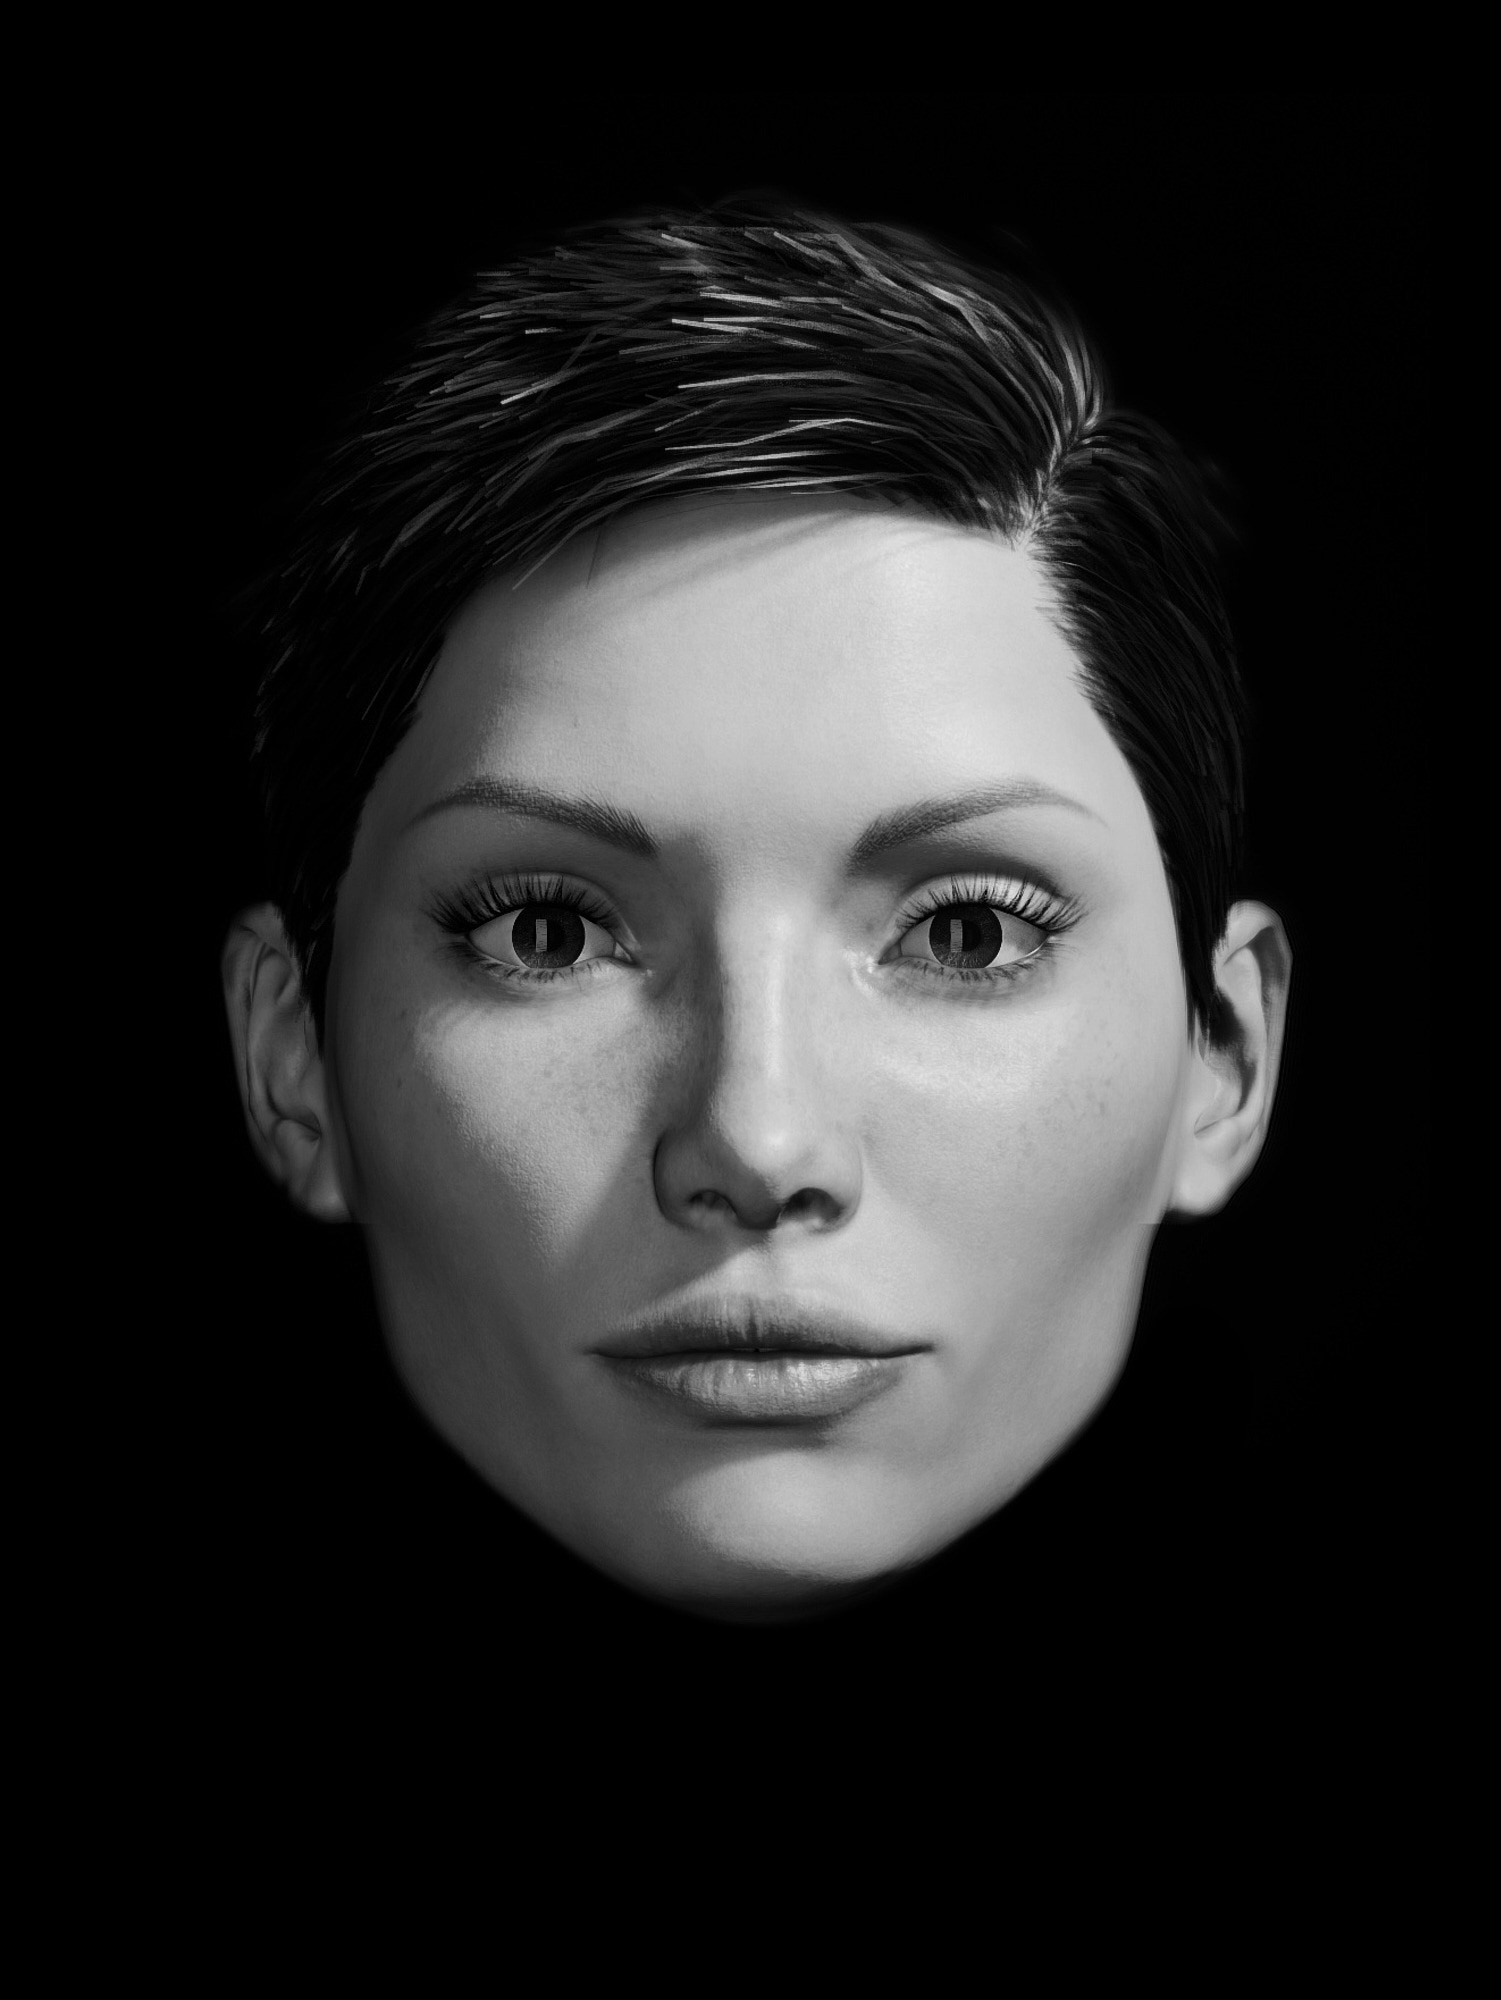 Concept of close-up black and white portrait in studio for a McDonald's internal campaign